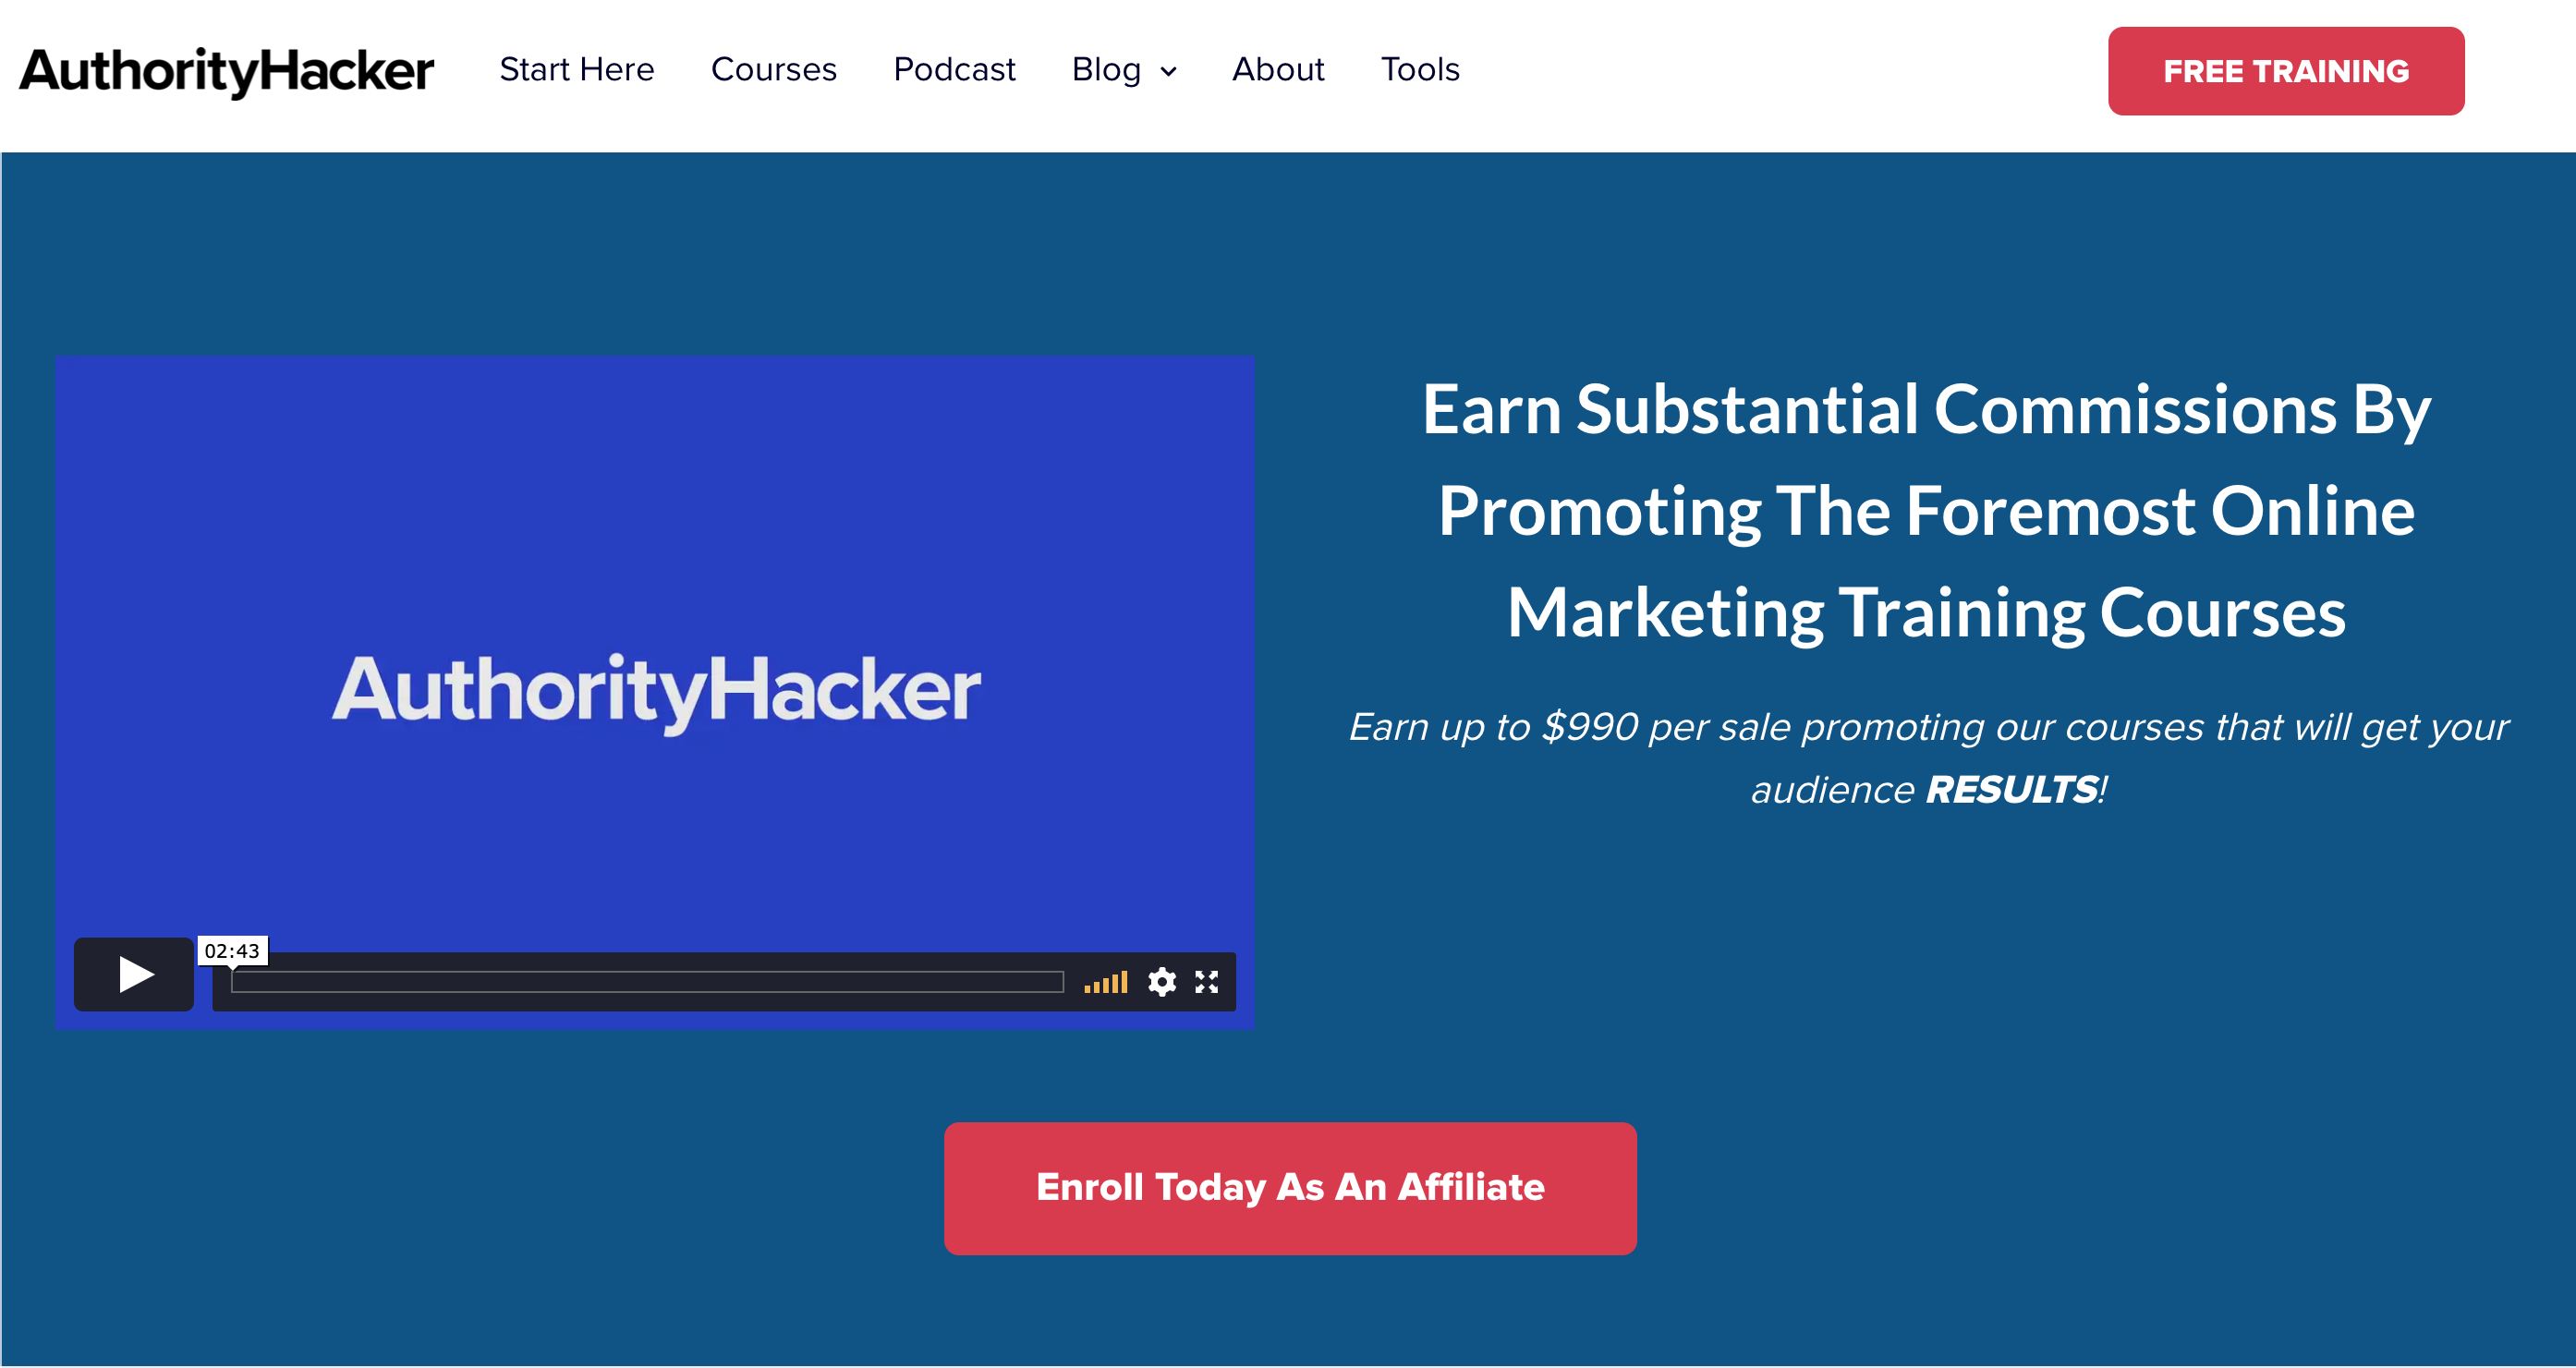 AuthorityHacker - affiliate program